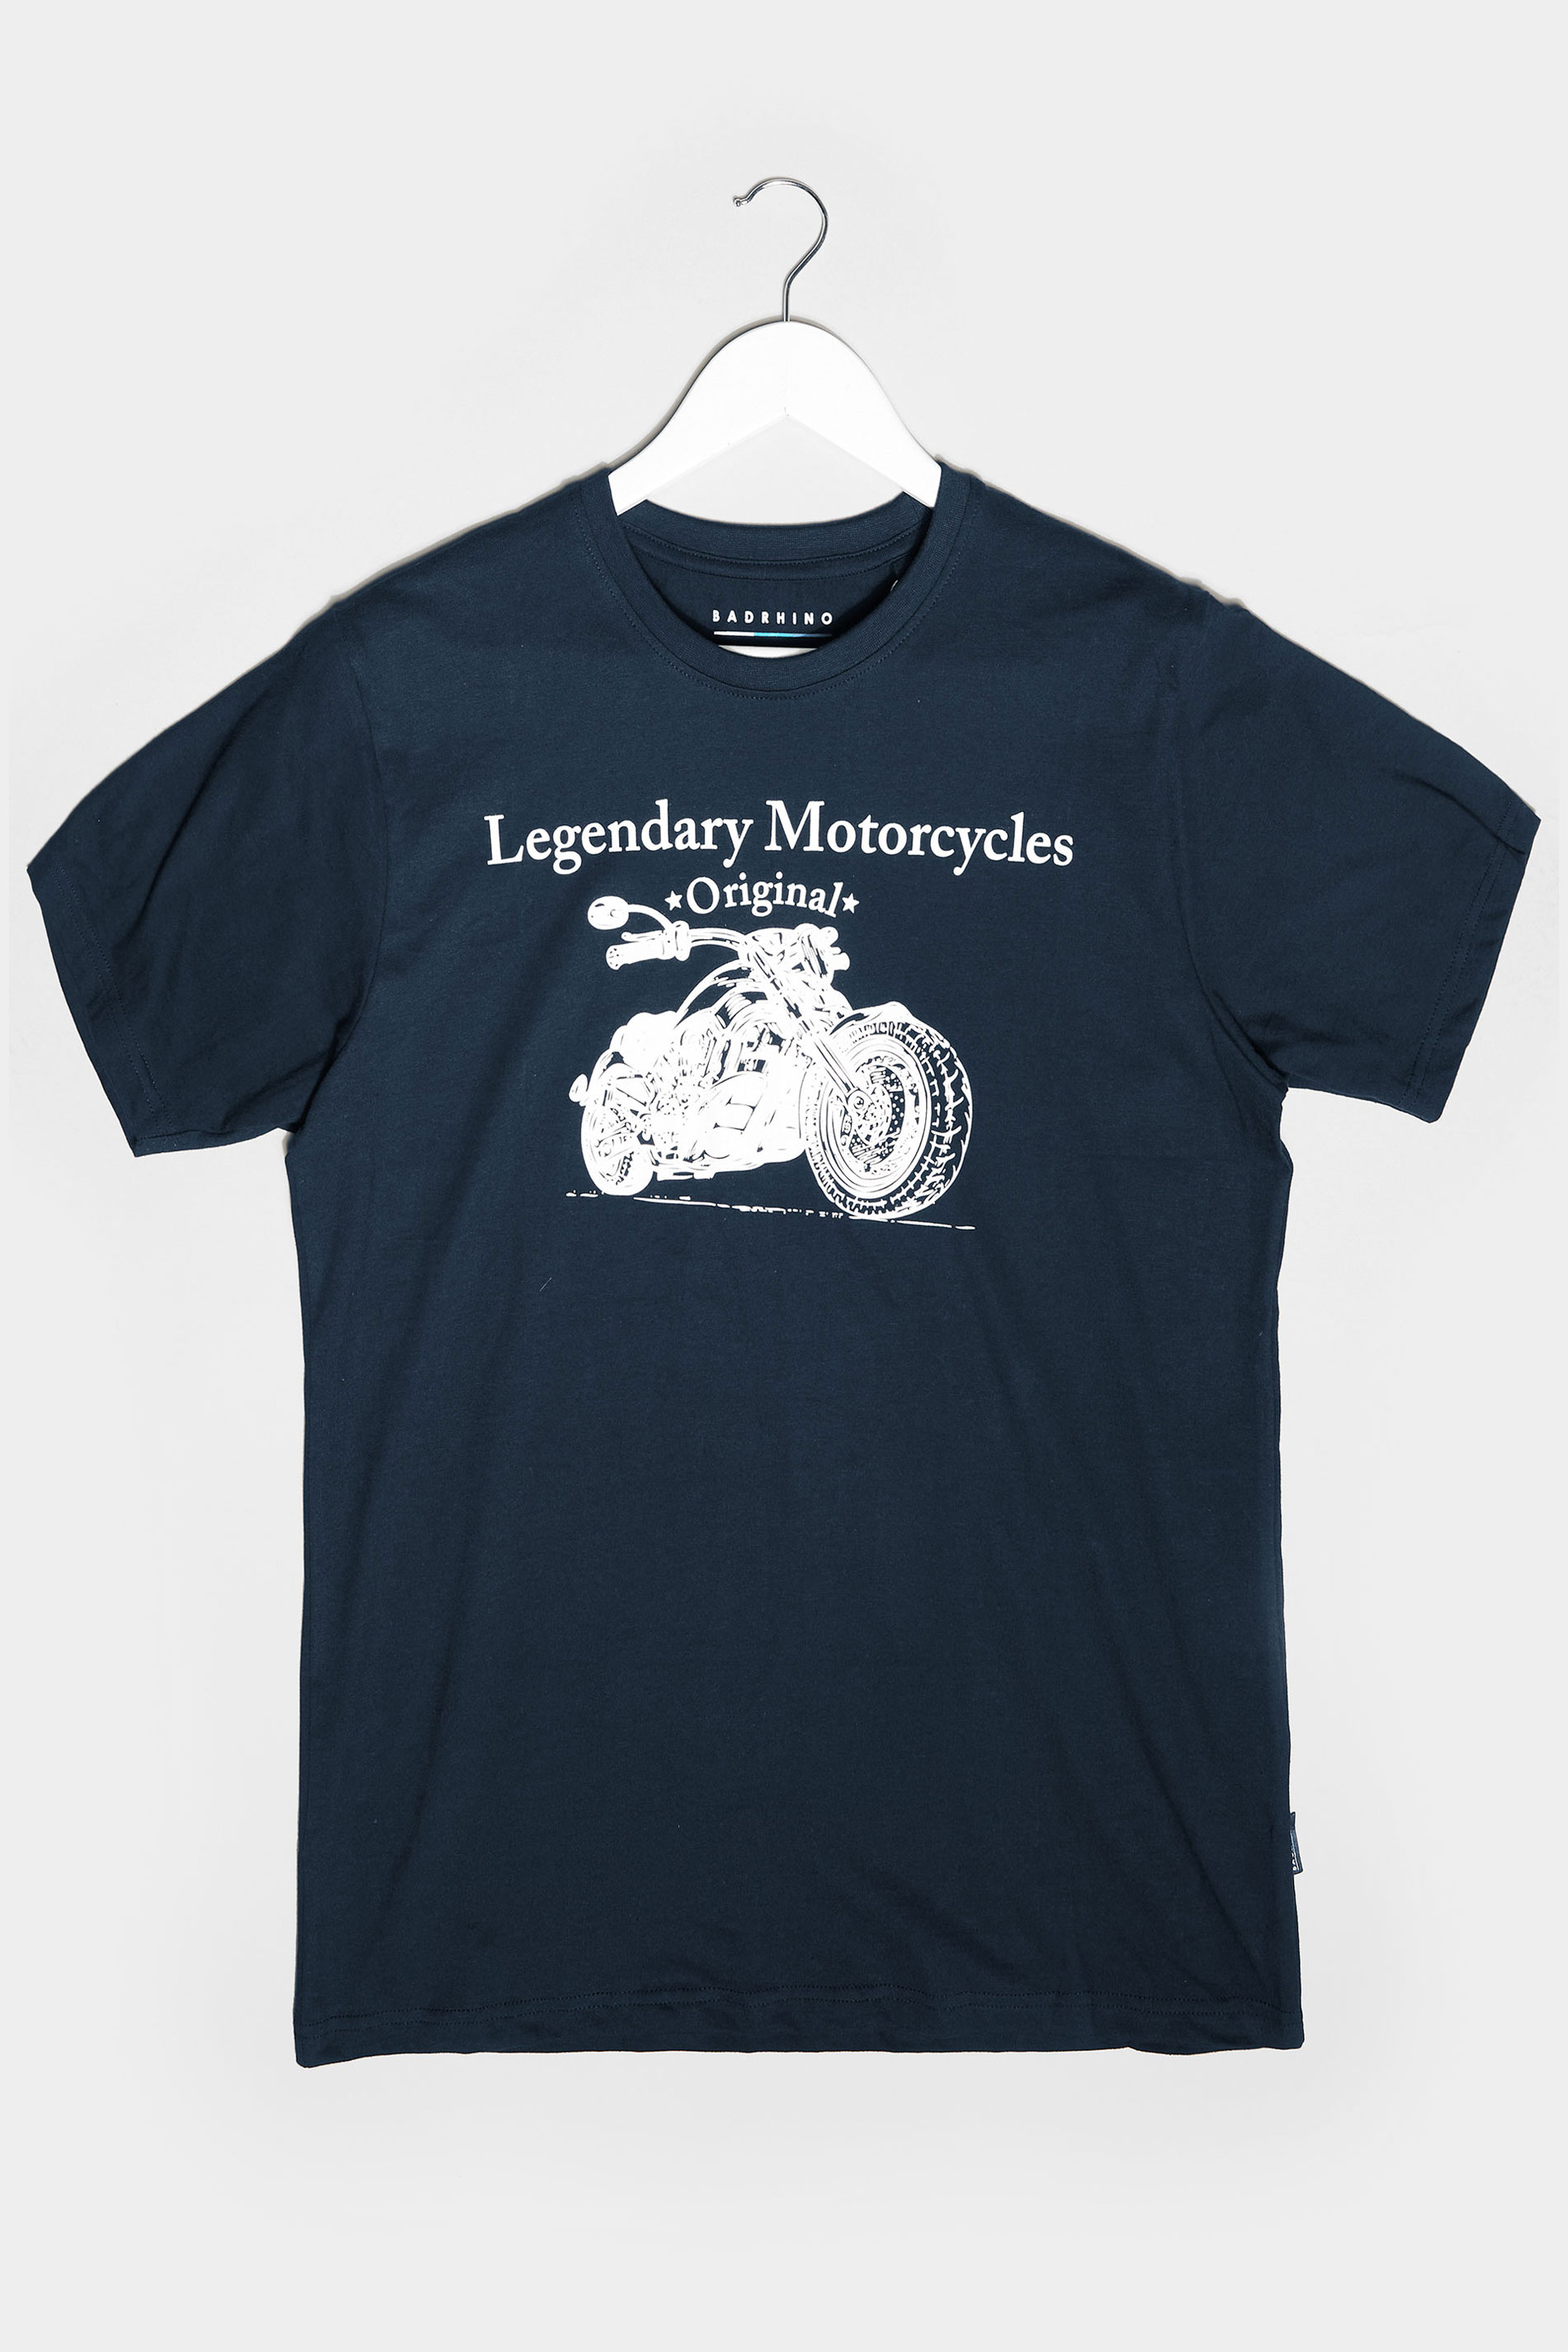 BadRhino Navy Legendary Motorcycles Graphic Print T-Shirt